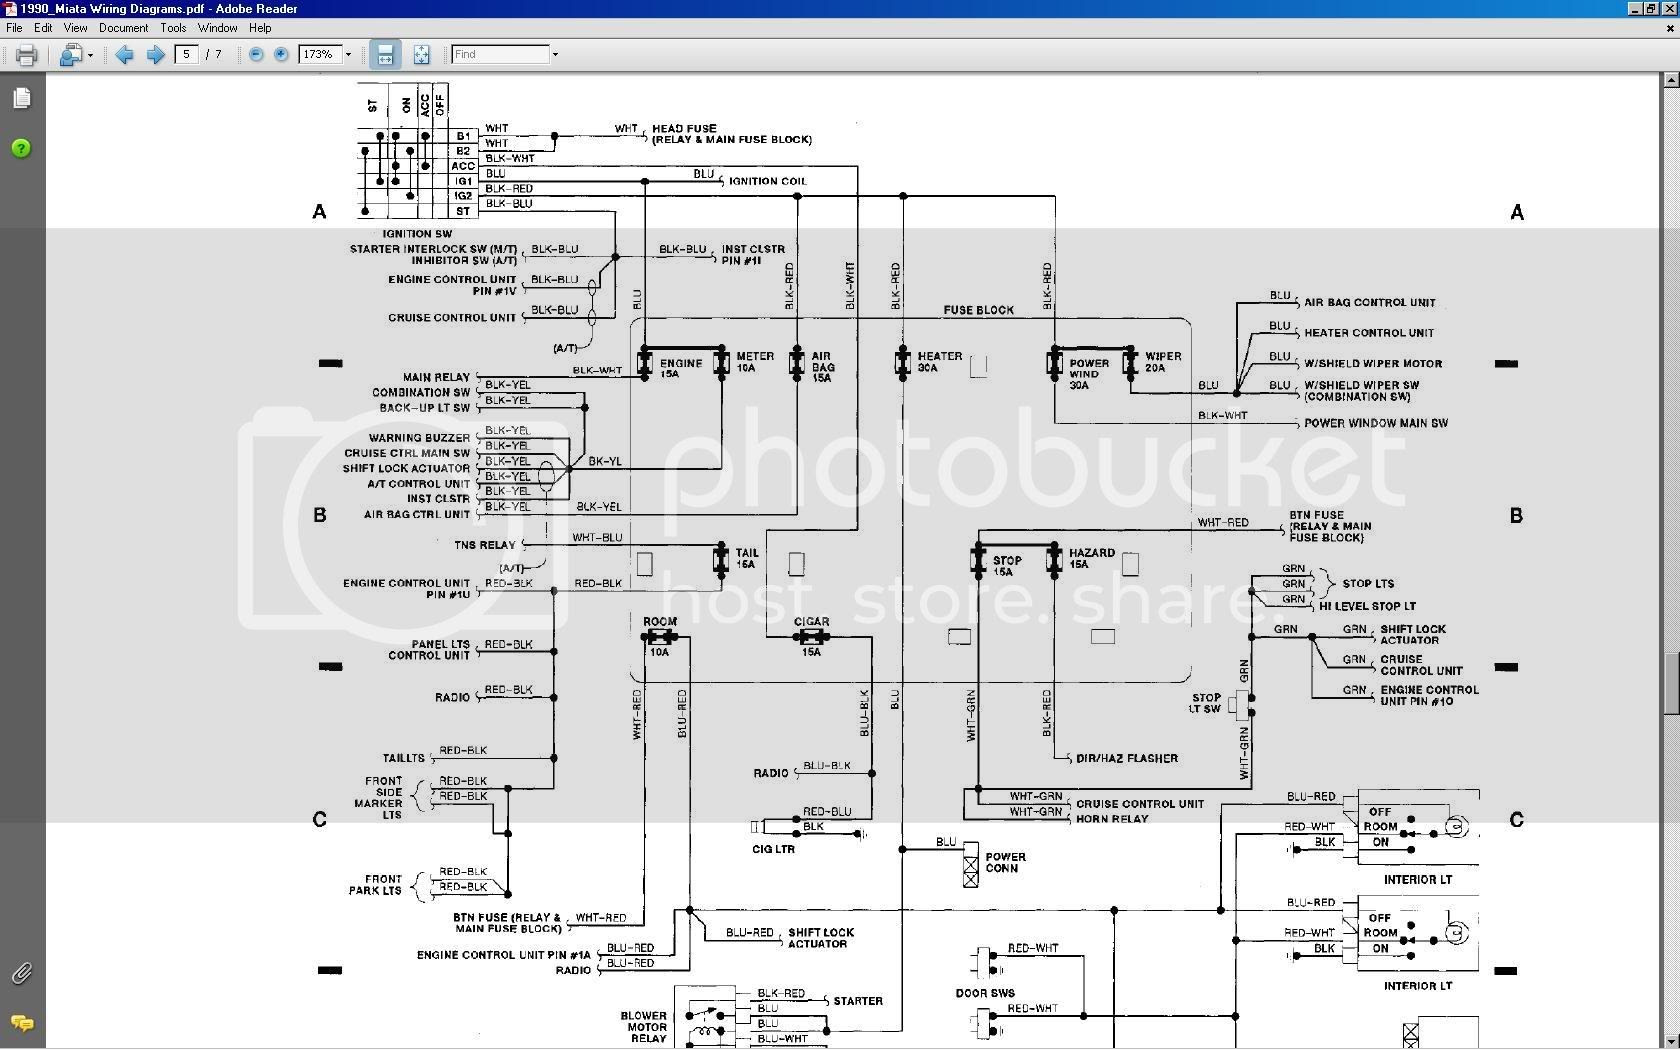 DIAGRAM] 2000 Mazda Protege Fuse Box Diagram Free Download Wiring FULL  Version HD Quality Download Wiring - SELFDIAGRAM.ANNA-MAILLARD.FRselfdiagram.anna-maillard.fr